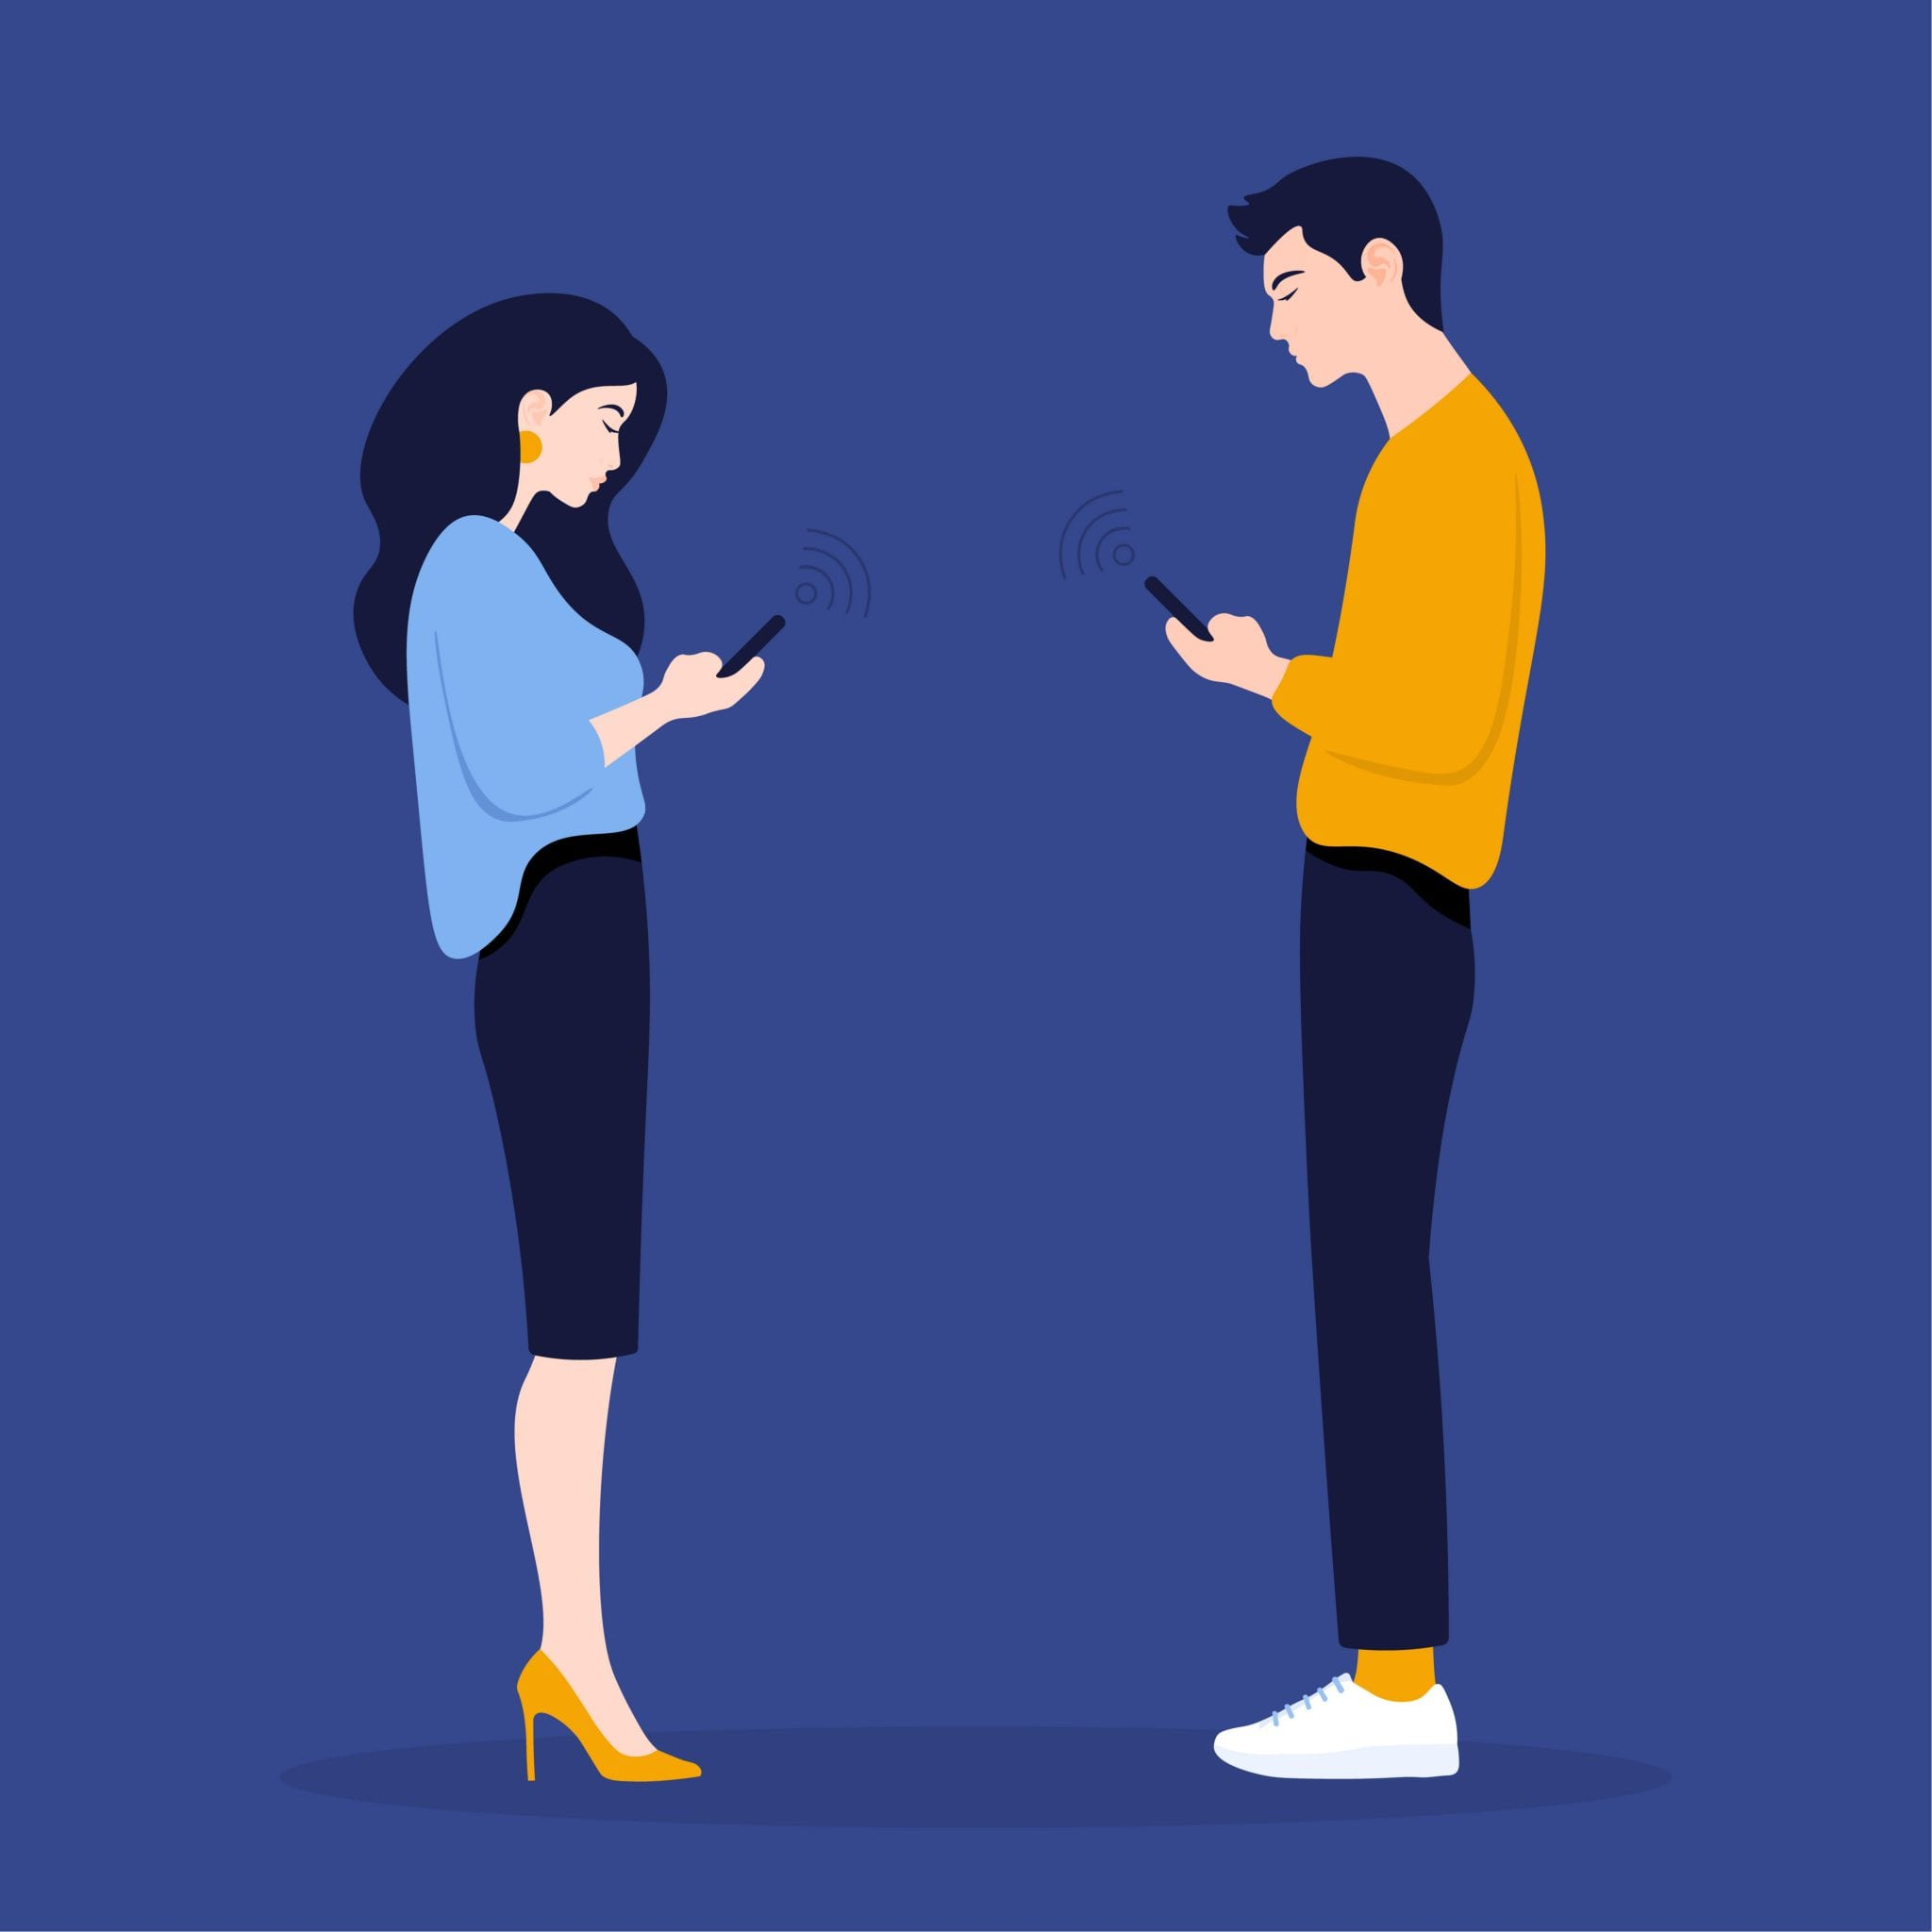 A Woman and a Man Stand in Profile and Look in Their Phones